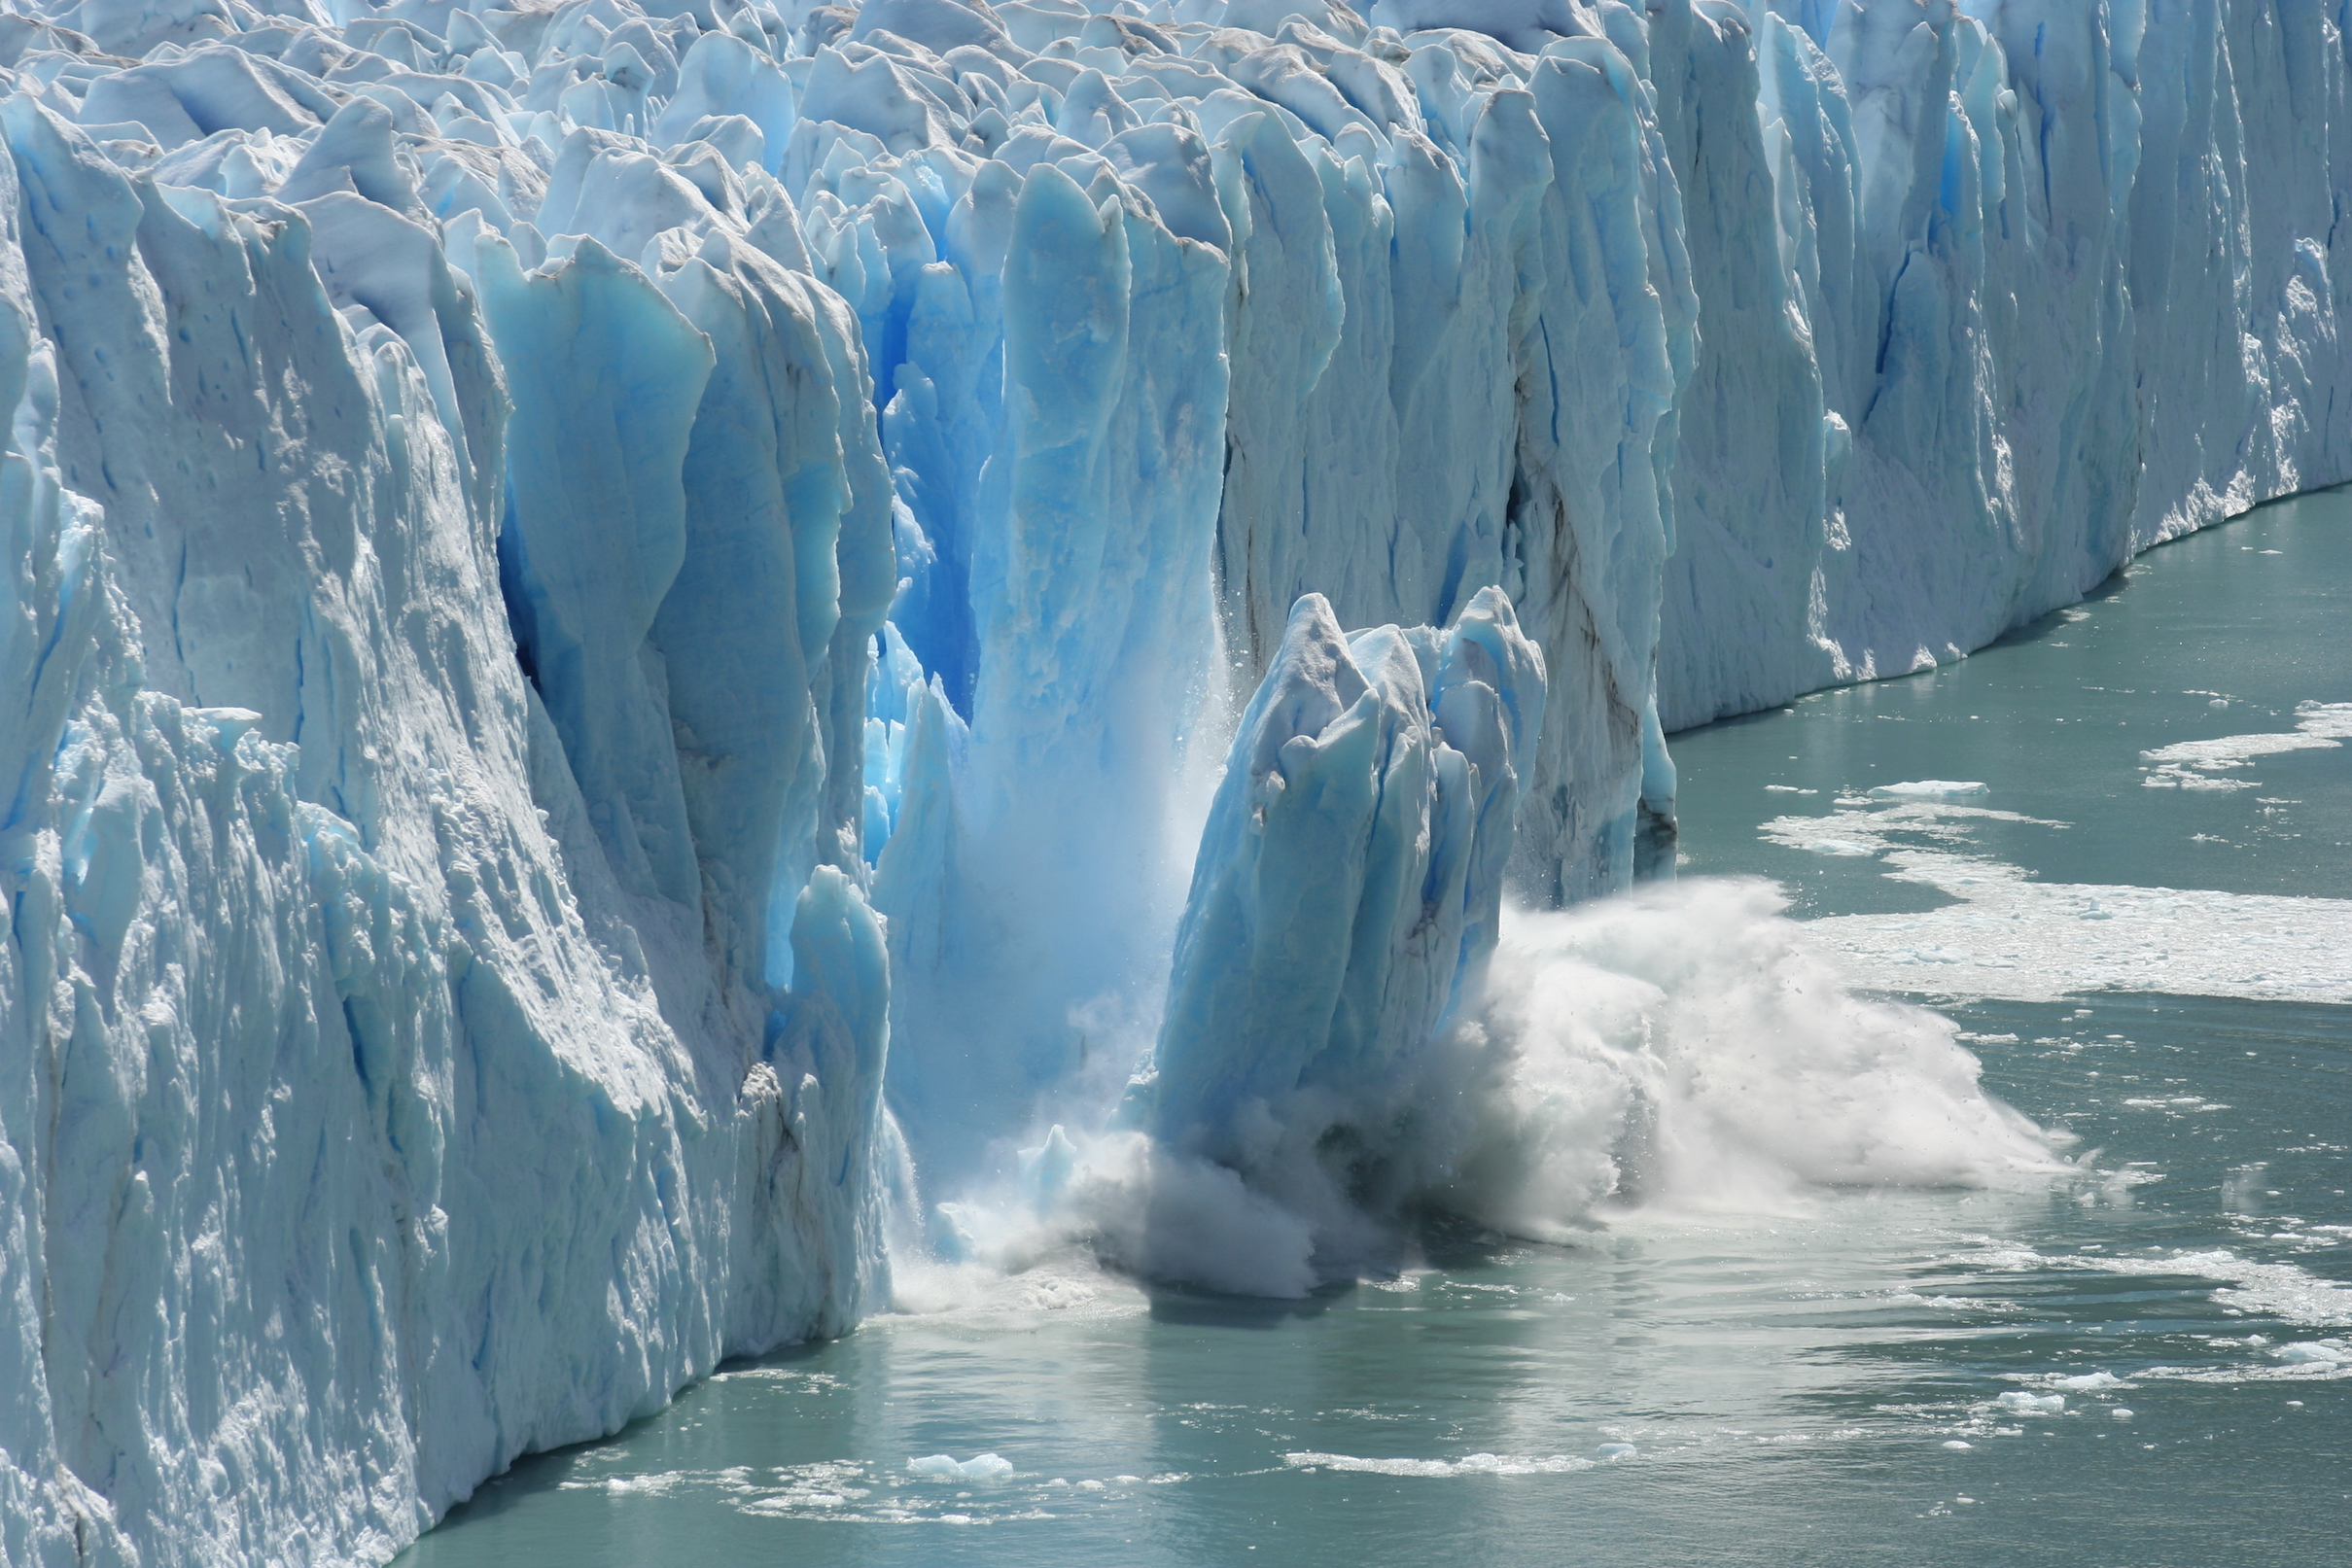 A new study has found that melting ice sheets and glaciers are weighing down on the ocean floor and causing it to sink.